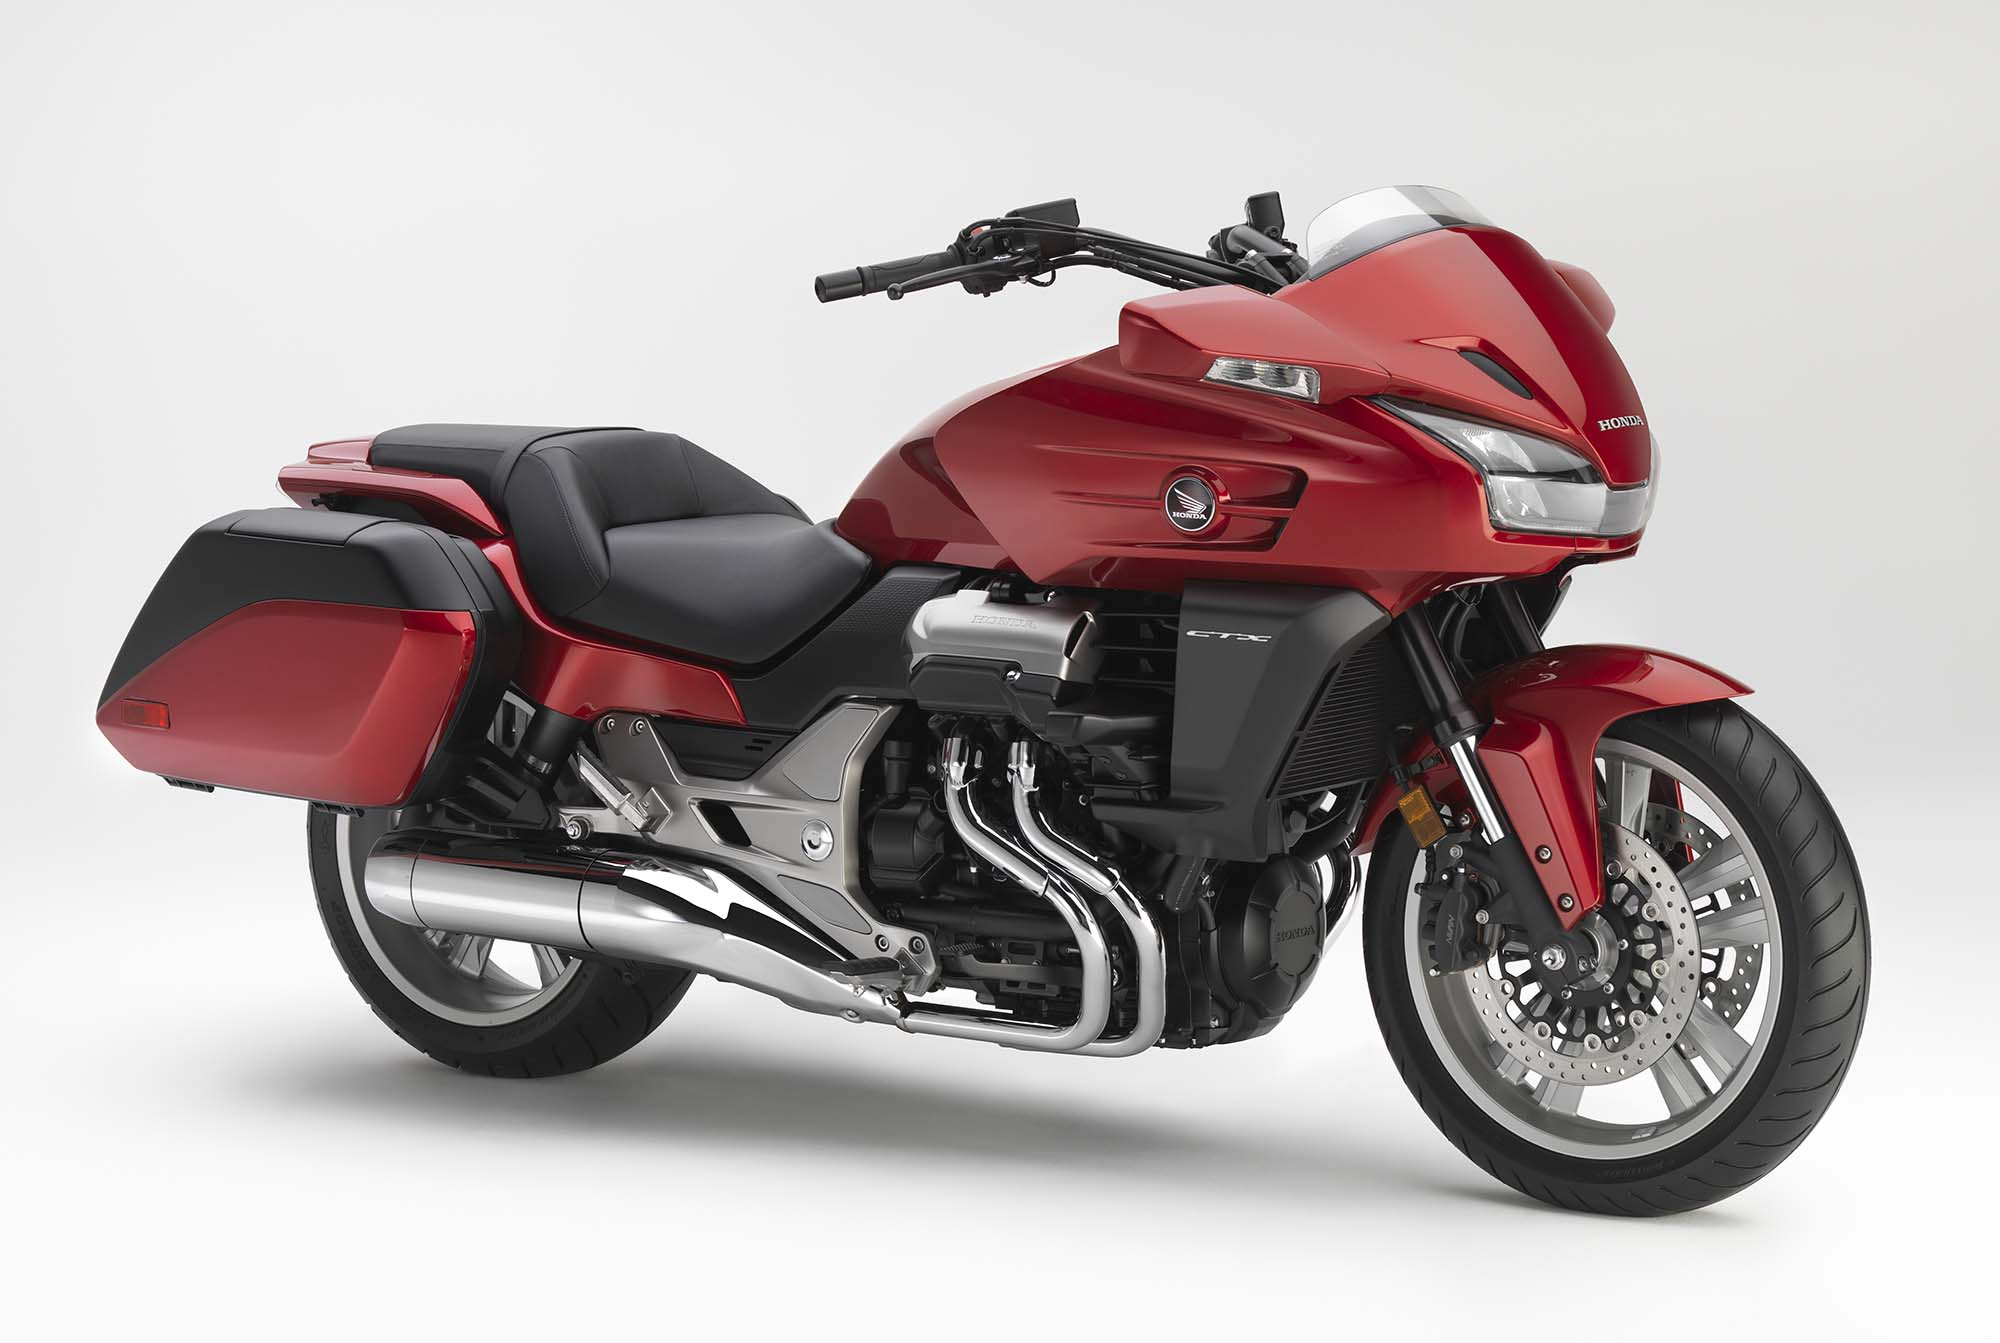 2014 Honda CTX1300 - Not Your Father's Bagger - Asphalt ...